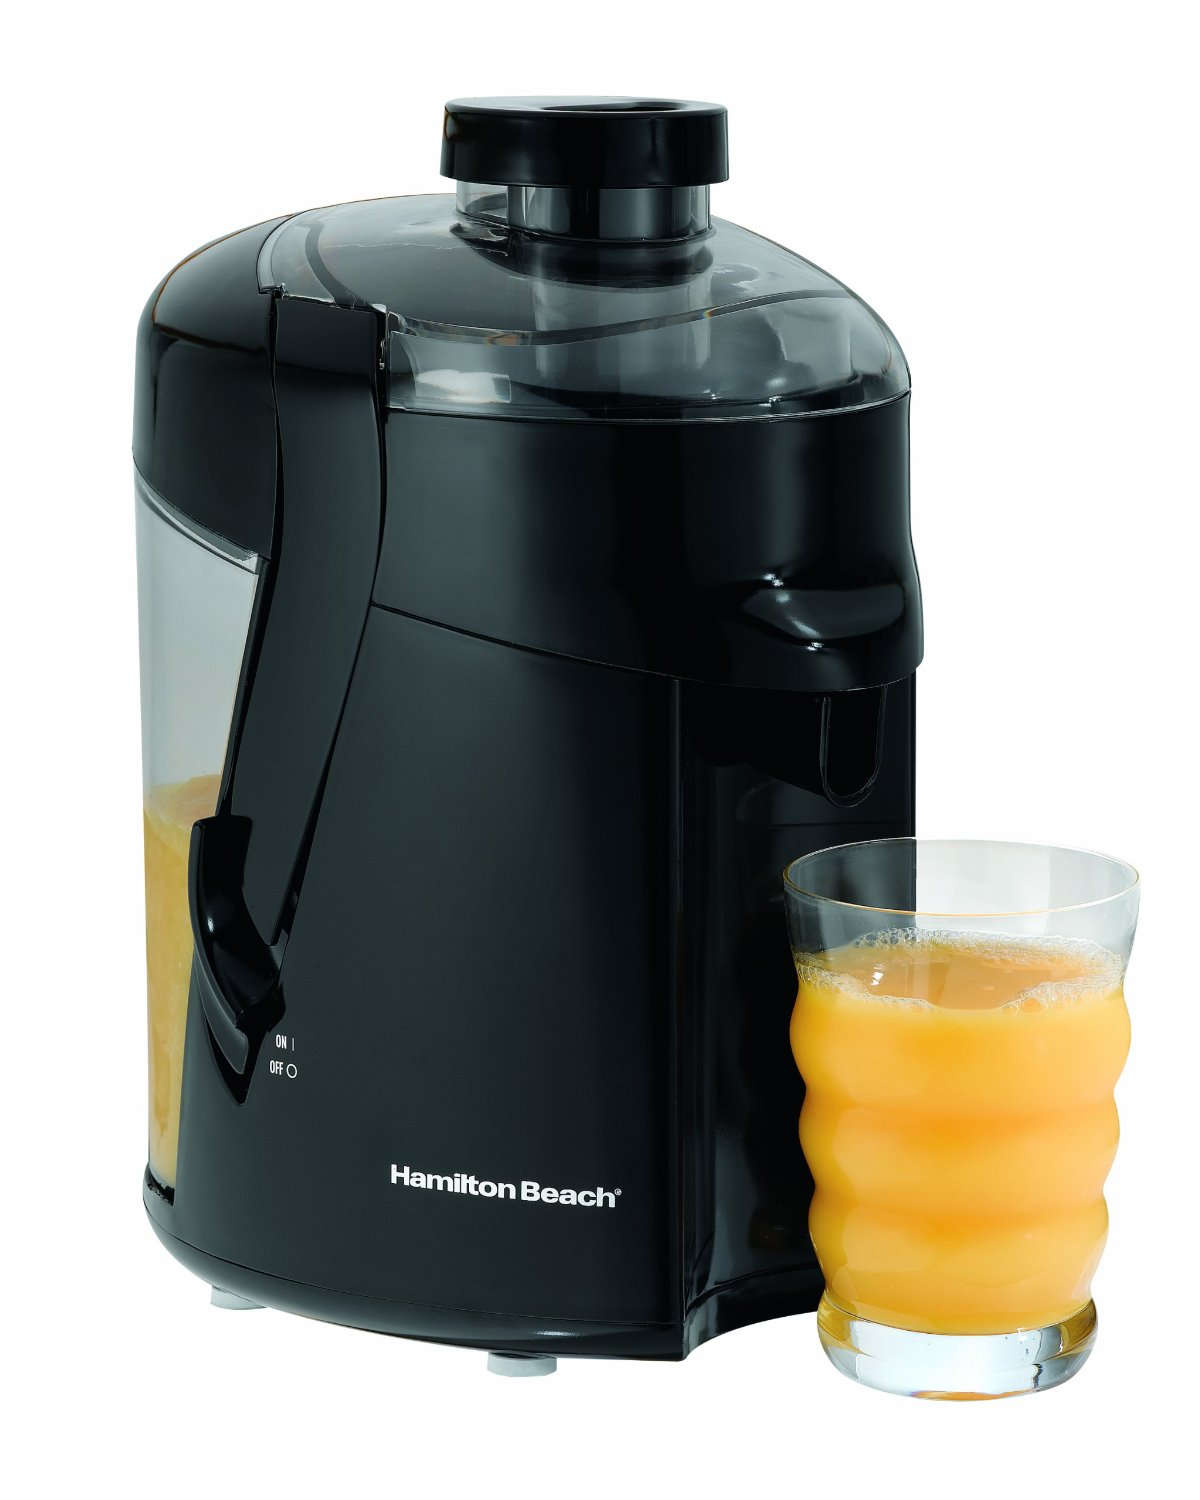 Hamilton Beach™ HealthSmart Juice Extractor Machine